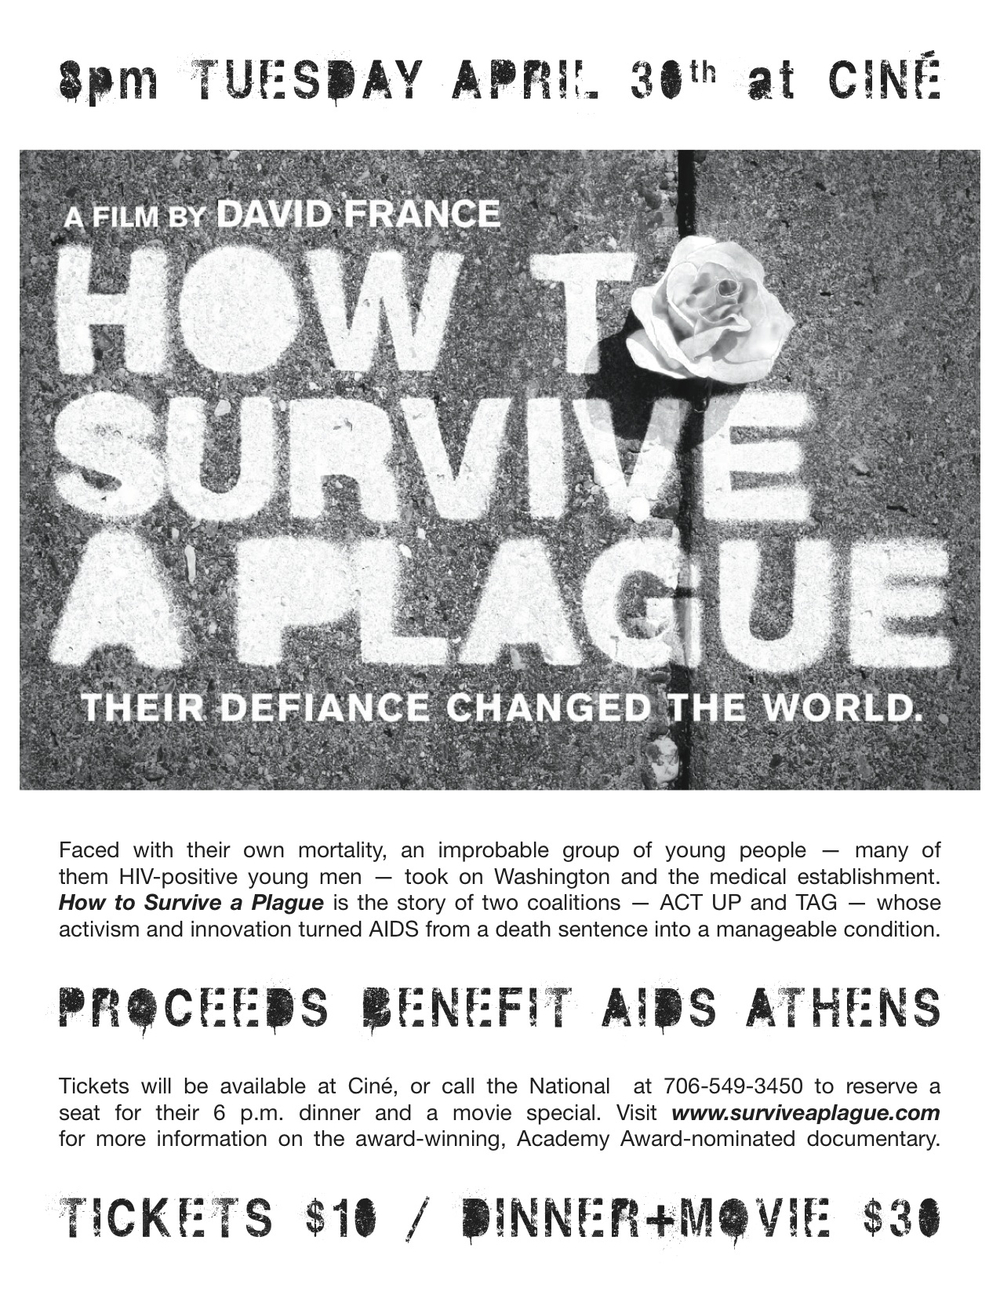 On  Tuesday, April 30,  Cine and AIDS Athens are joining with The National to bring you  How To Survive A Plague , the stunning story of how a group of young people, faced with their own mortality, helped turn AIDS from a death sentence into a manageable condition.     6pm Prix Fixe Dinner at The National    8pm Screening of How to Survive A Plague     To join us to for this special Dinner and a Movie night, benefitting AIDS Athens, call 706-549-3540 to reserve a table for the 6pm seating.    Movie Tickets: $10 // Dinner and a Movie $30